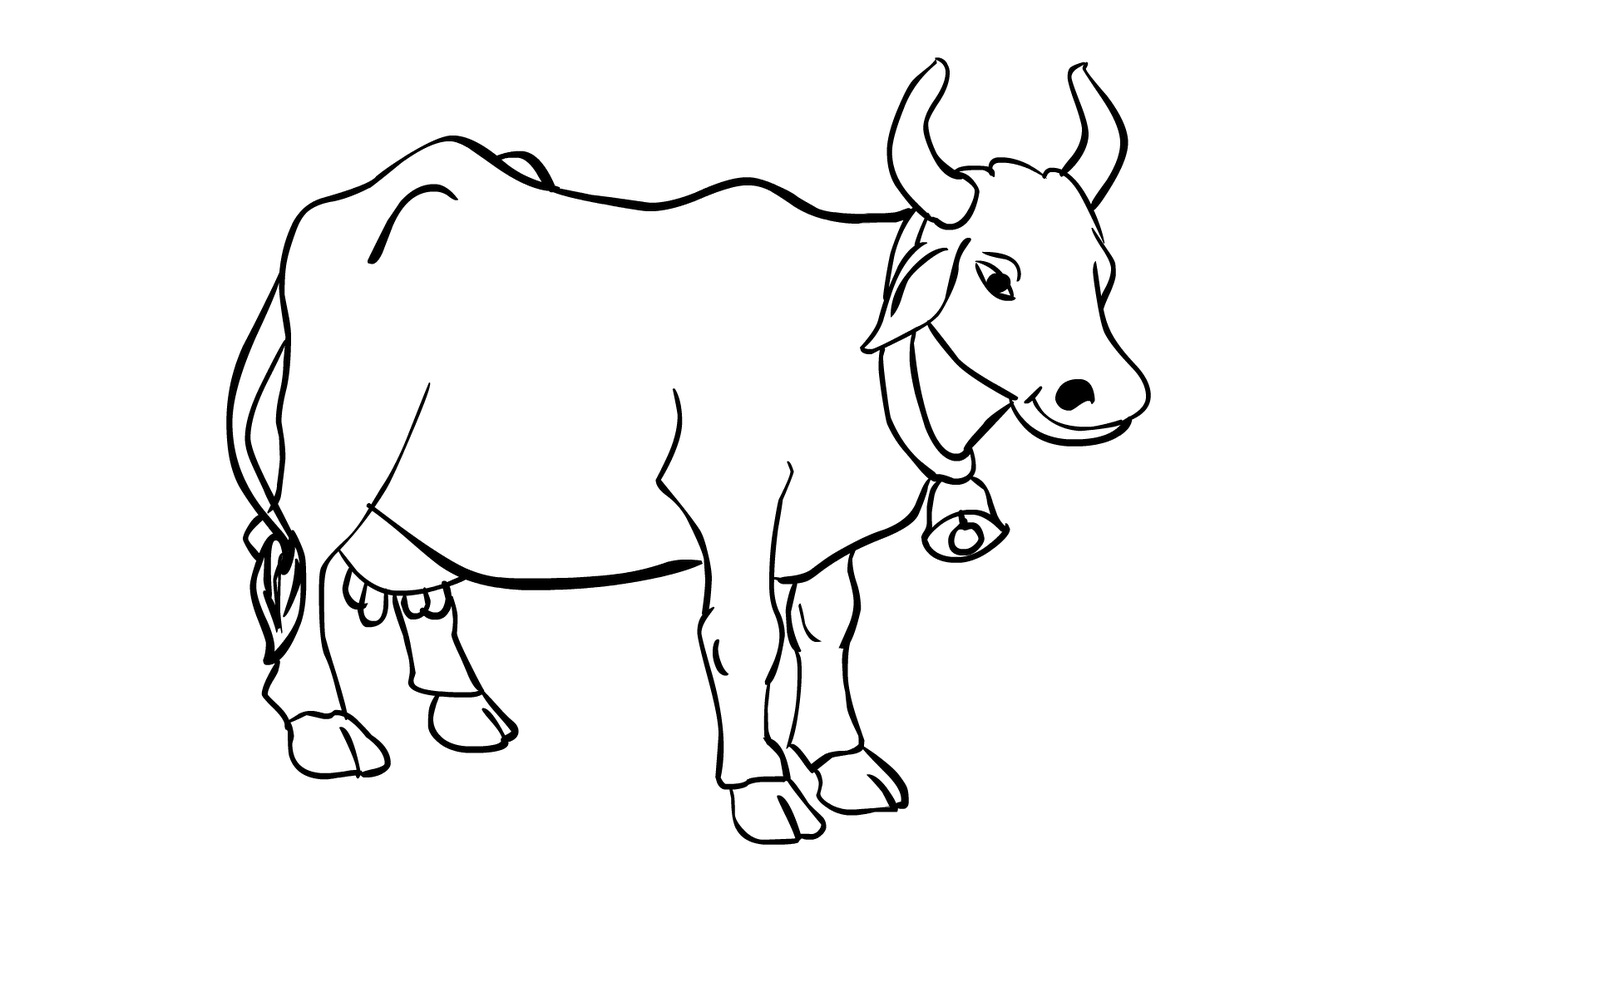 Coloring pages cow - Coloring Pages Cow Image